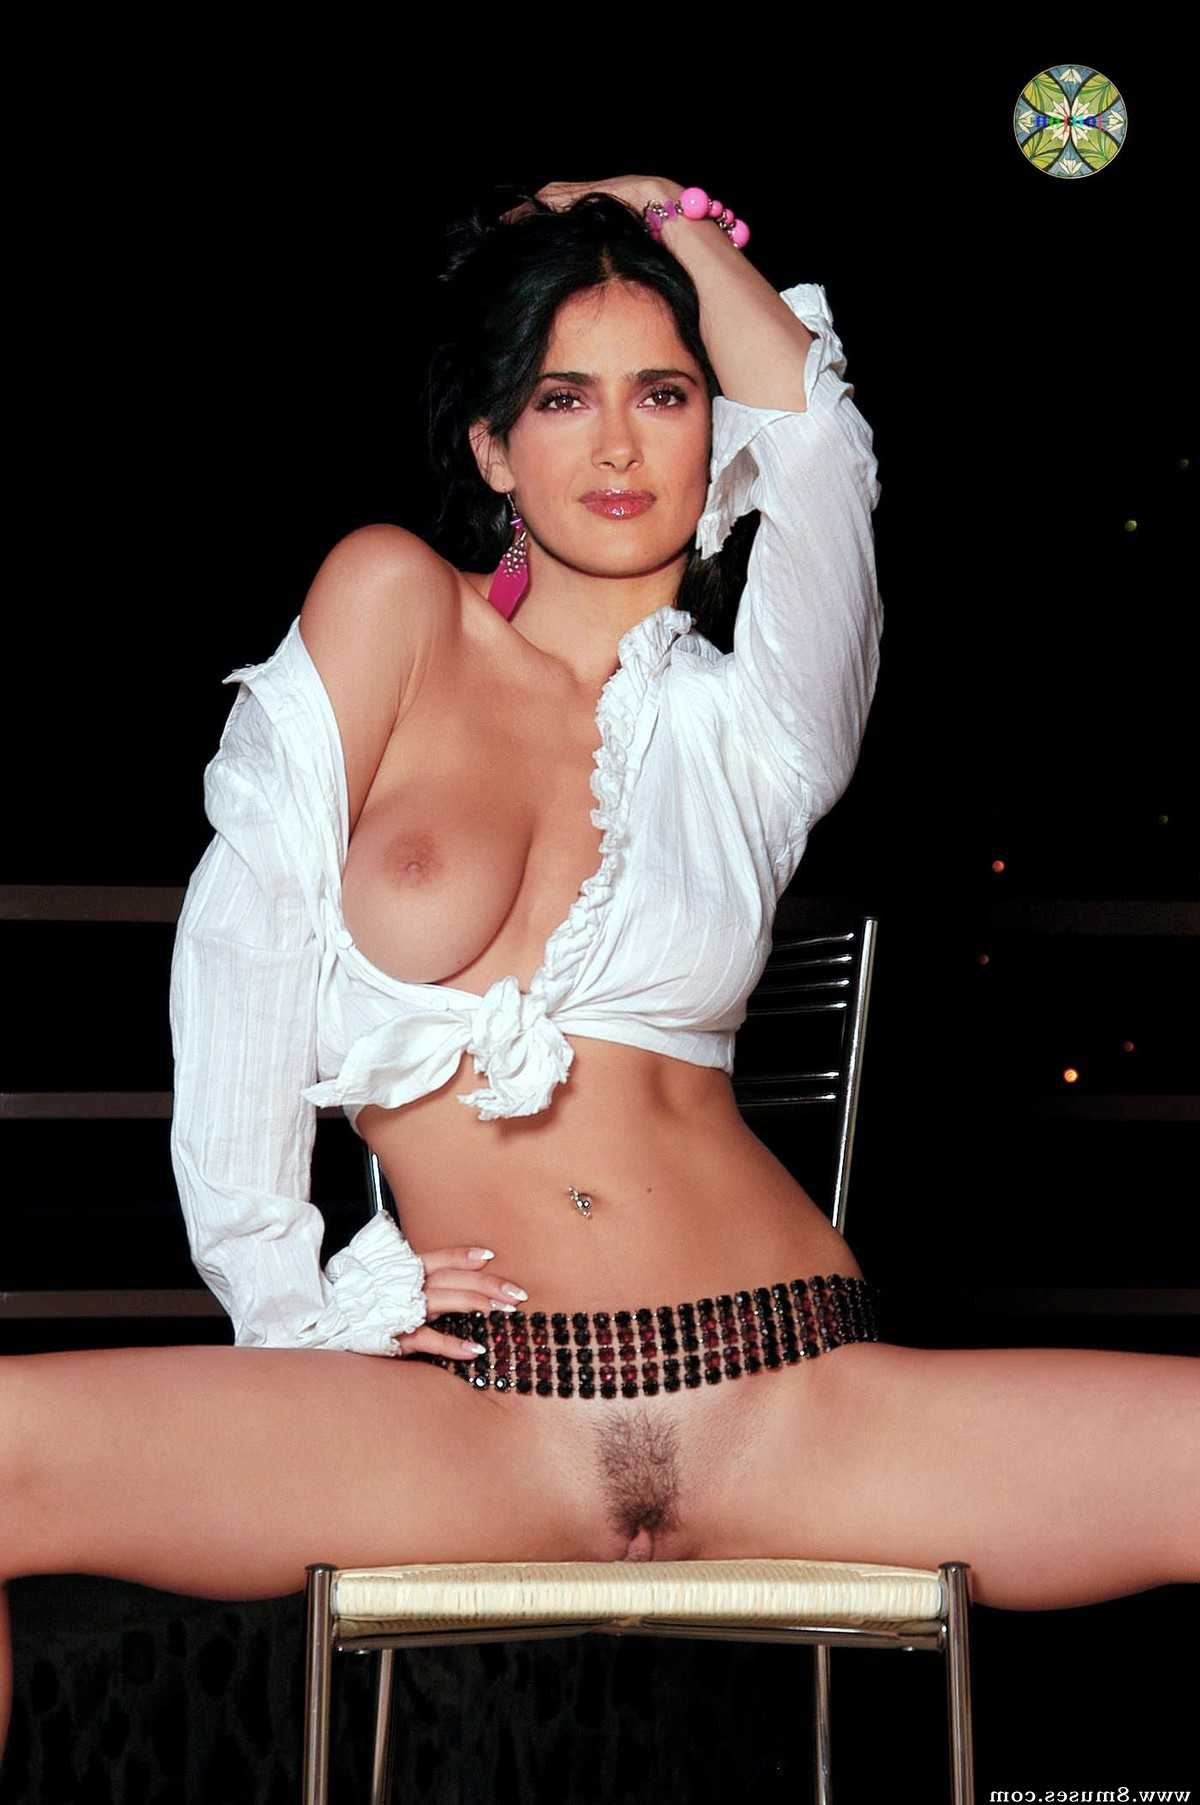 Fake-Celebrities-Sex-Pictures/Salma-Hayek Salma_Hayek__8muses_-_Sex_and_Porn_Comics_30.jpg